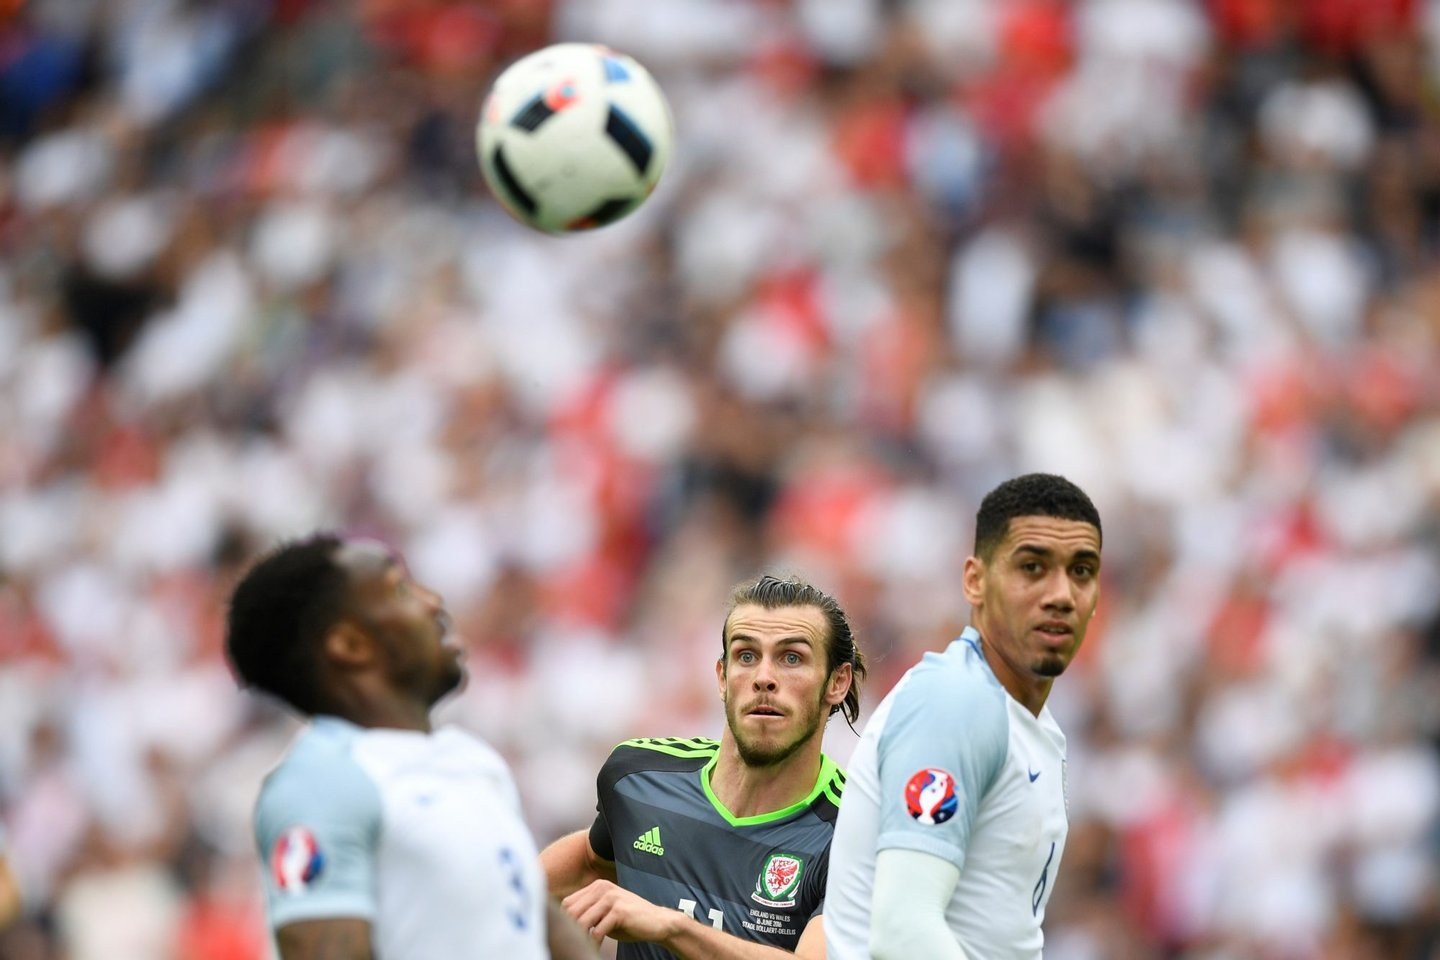 Wales' forward Gareth Bale (C) vies for the ball with England's defender Chris Smalling (R) and England's defender Danny Rose during the Euro 2016 group B football match between England and Wales at the Bollaert-Delelis stadium in Lens on June 16, 2016. / AFP / MARTIN BUREAU (Photo credit should read MARTIN BUREAU/AFP/Getty Images)